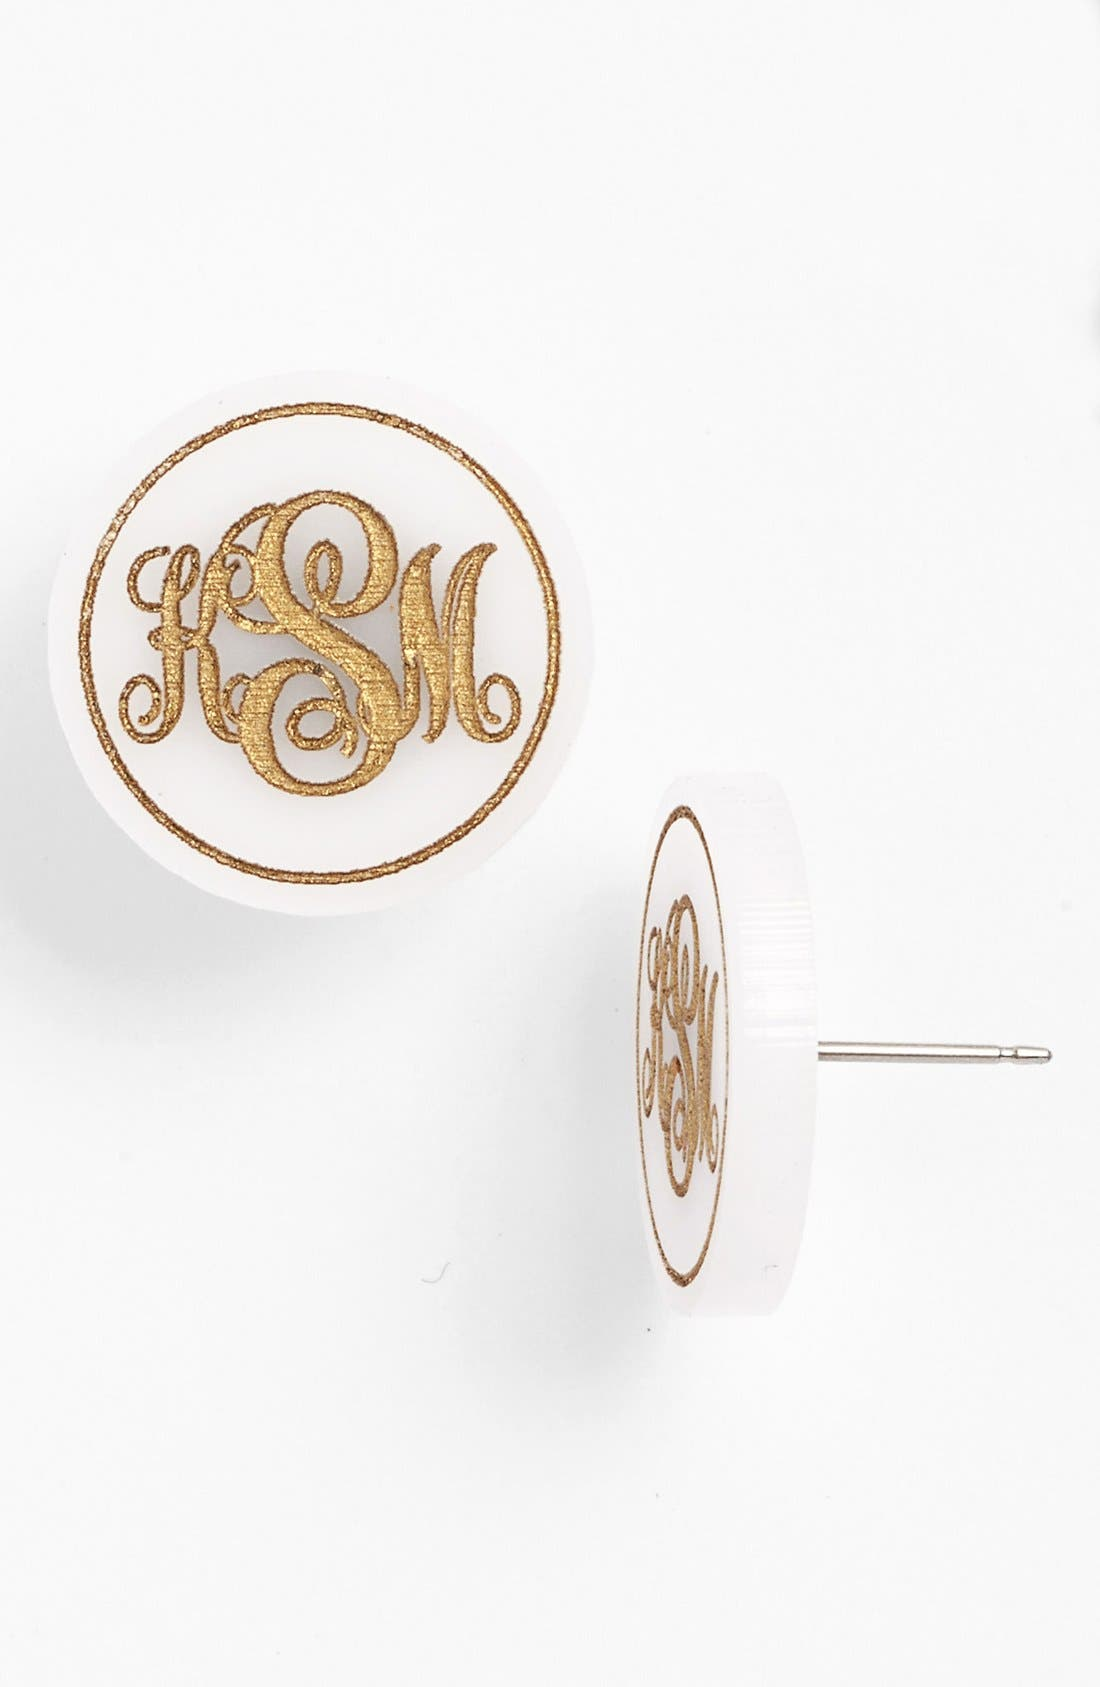 Moon and Lola 'Chelsea' Medium Personalized Monogram Stud Earrings (Nordstrom Exclusive)